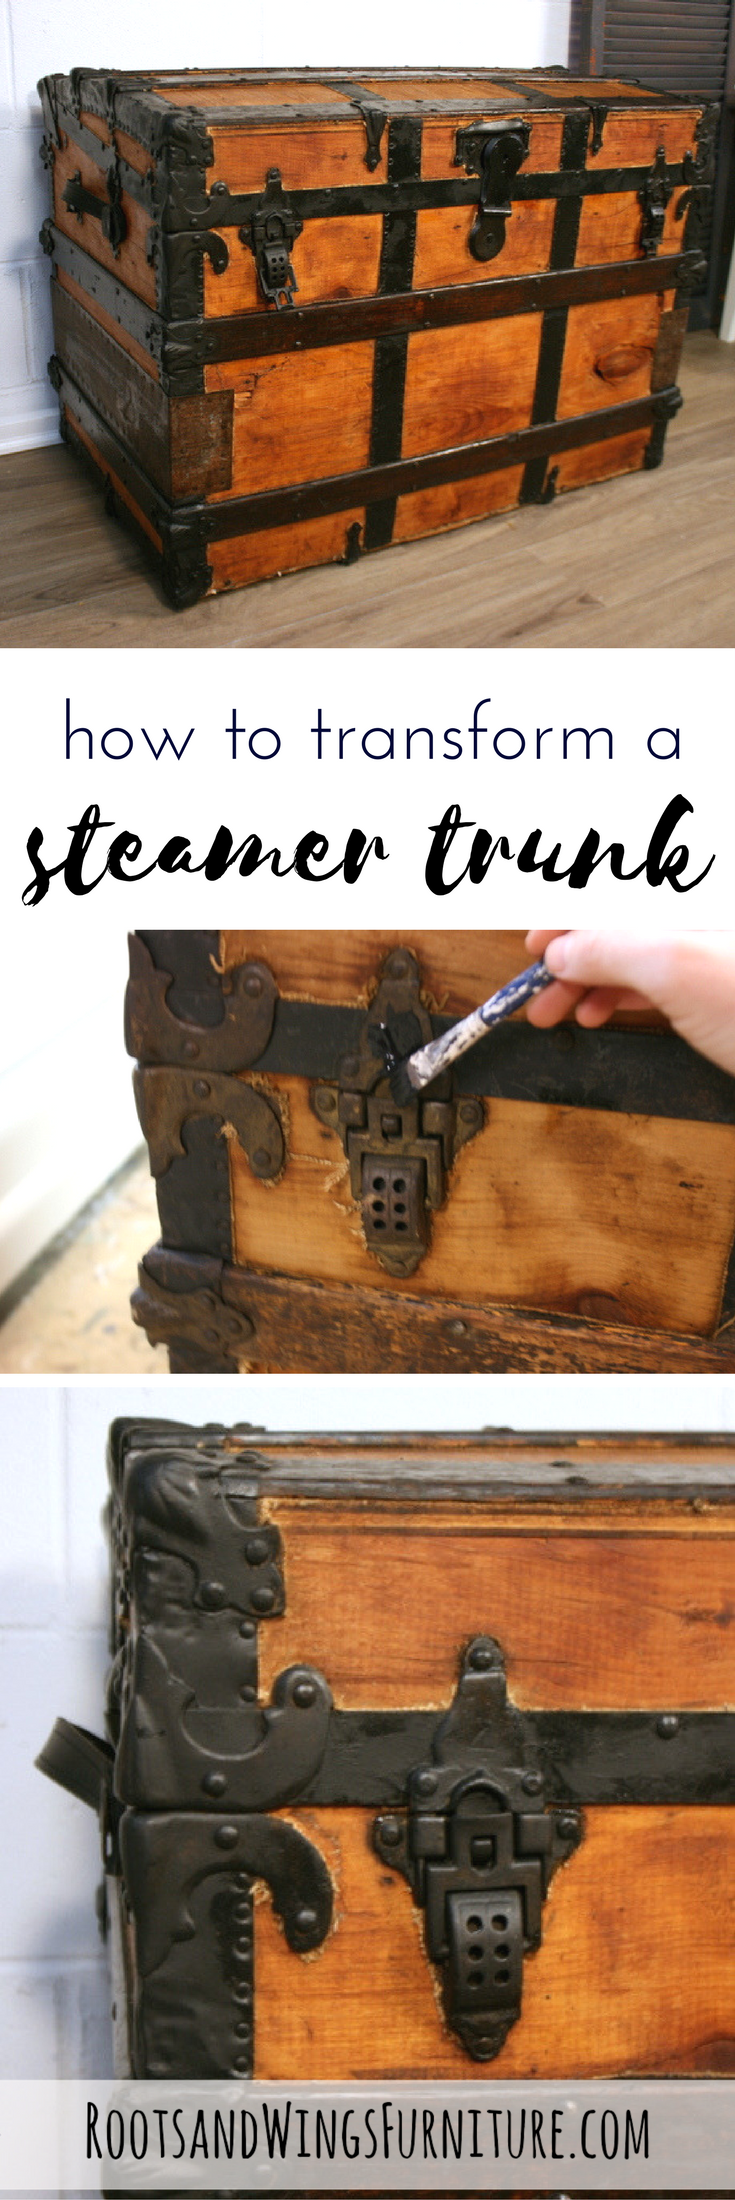 http://www.rootsandwingsfurniture.com/blog/steamertrunk